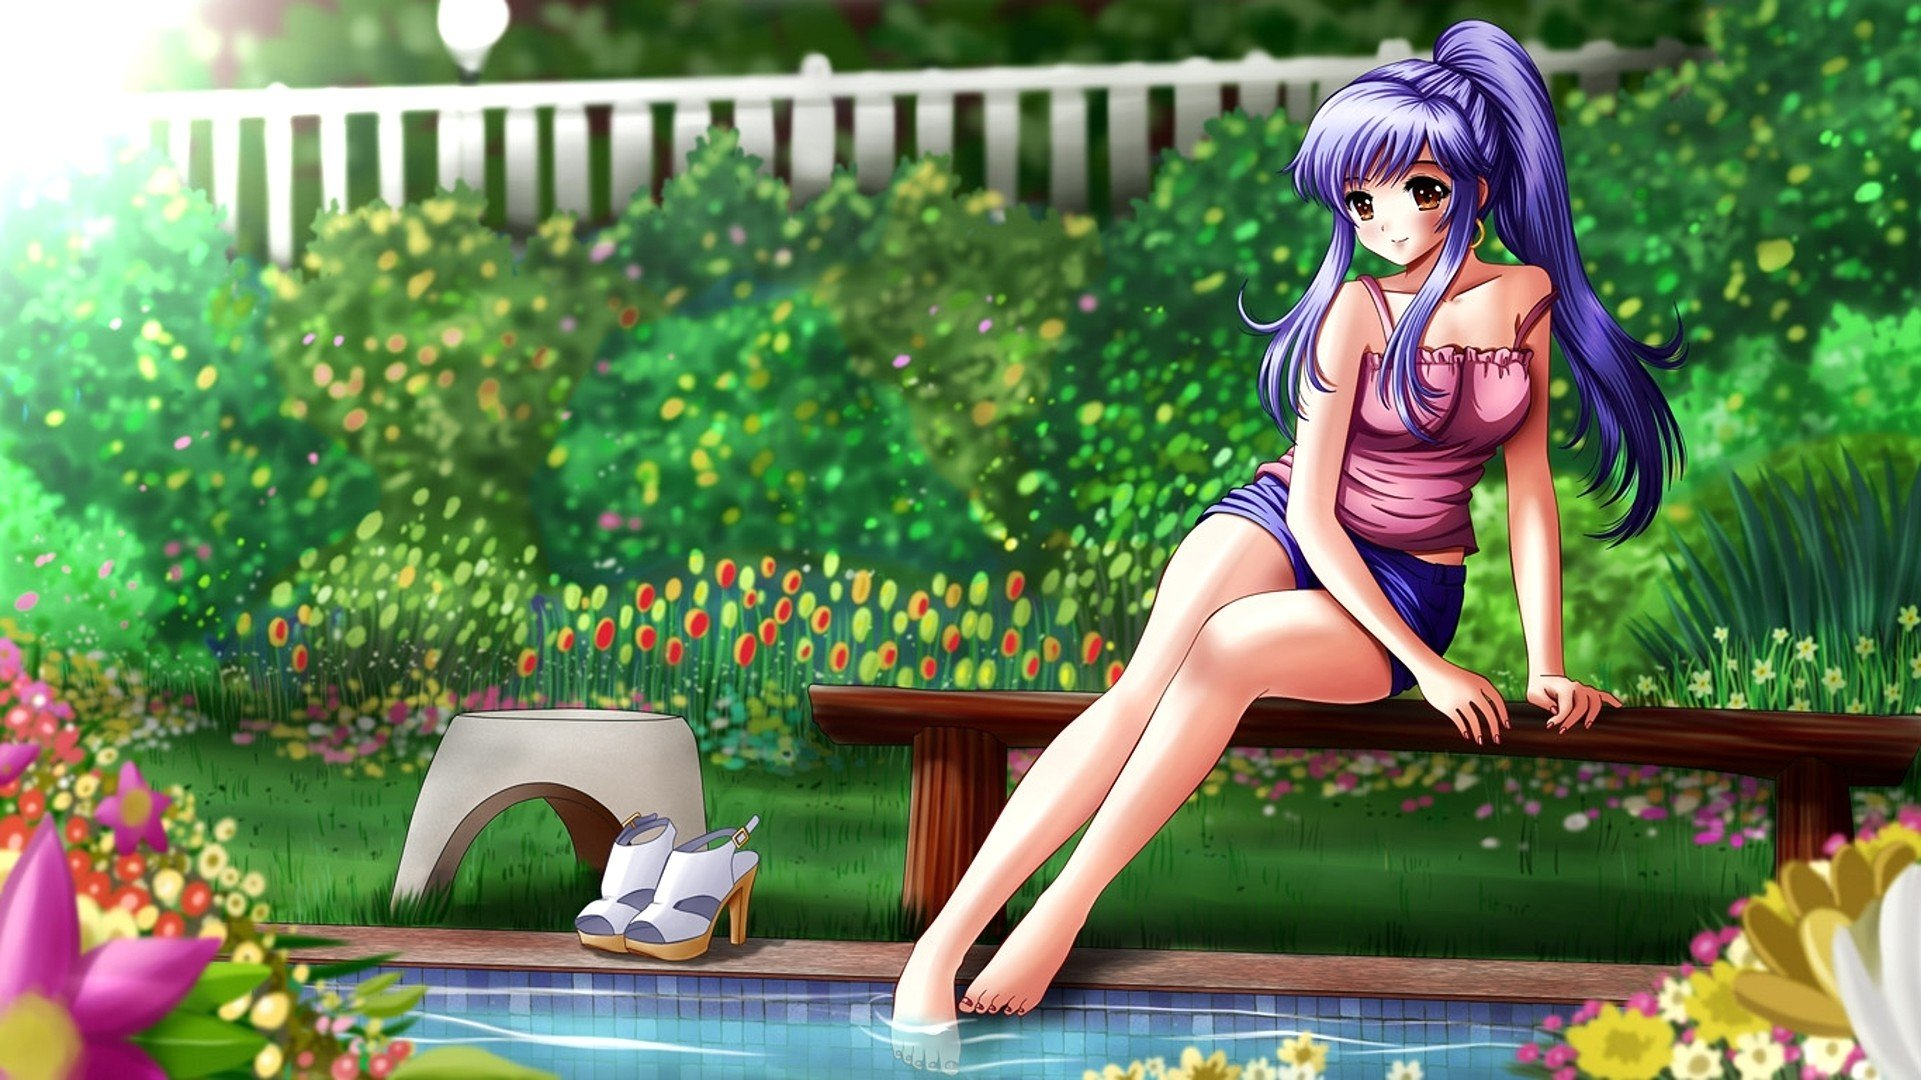 Small Garden Pictures Garden Purple Hair Anime Swimming Pools Anime Girls